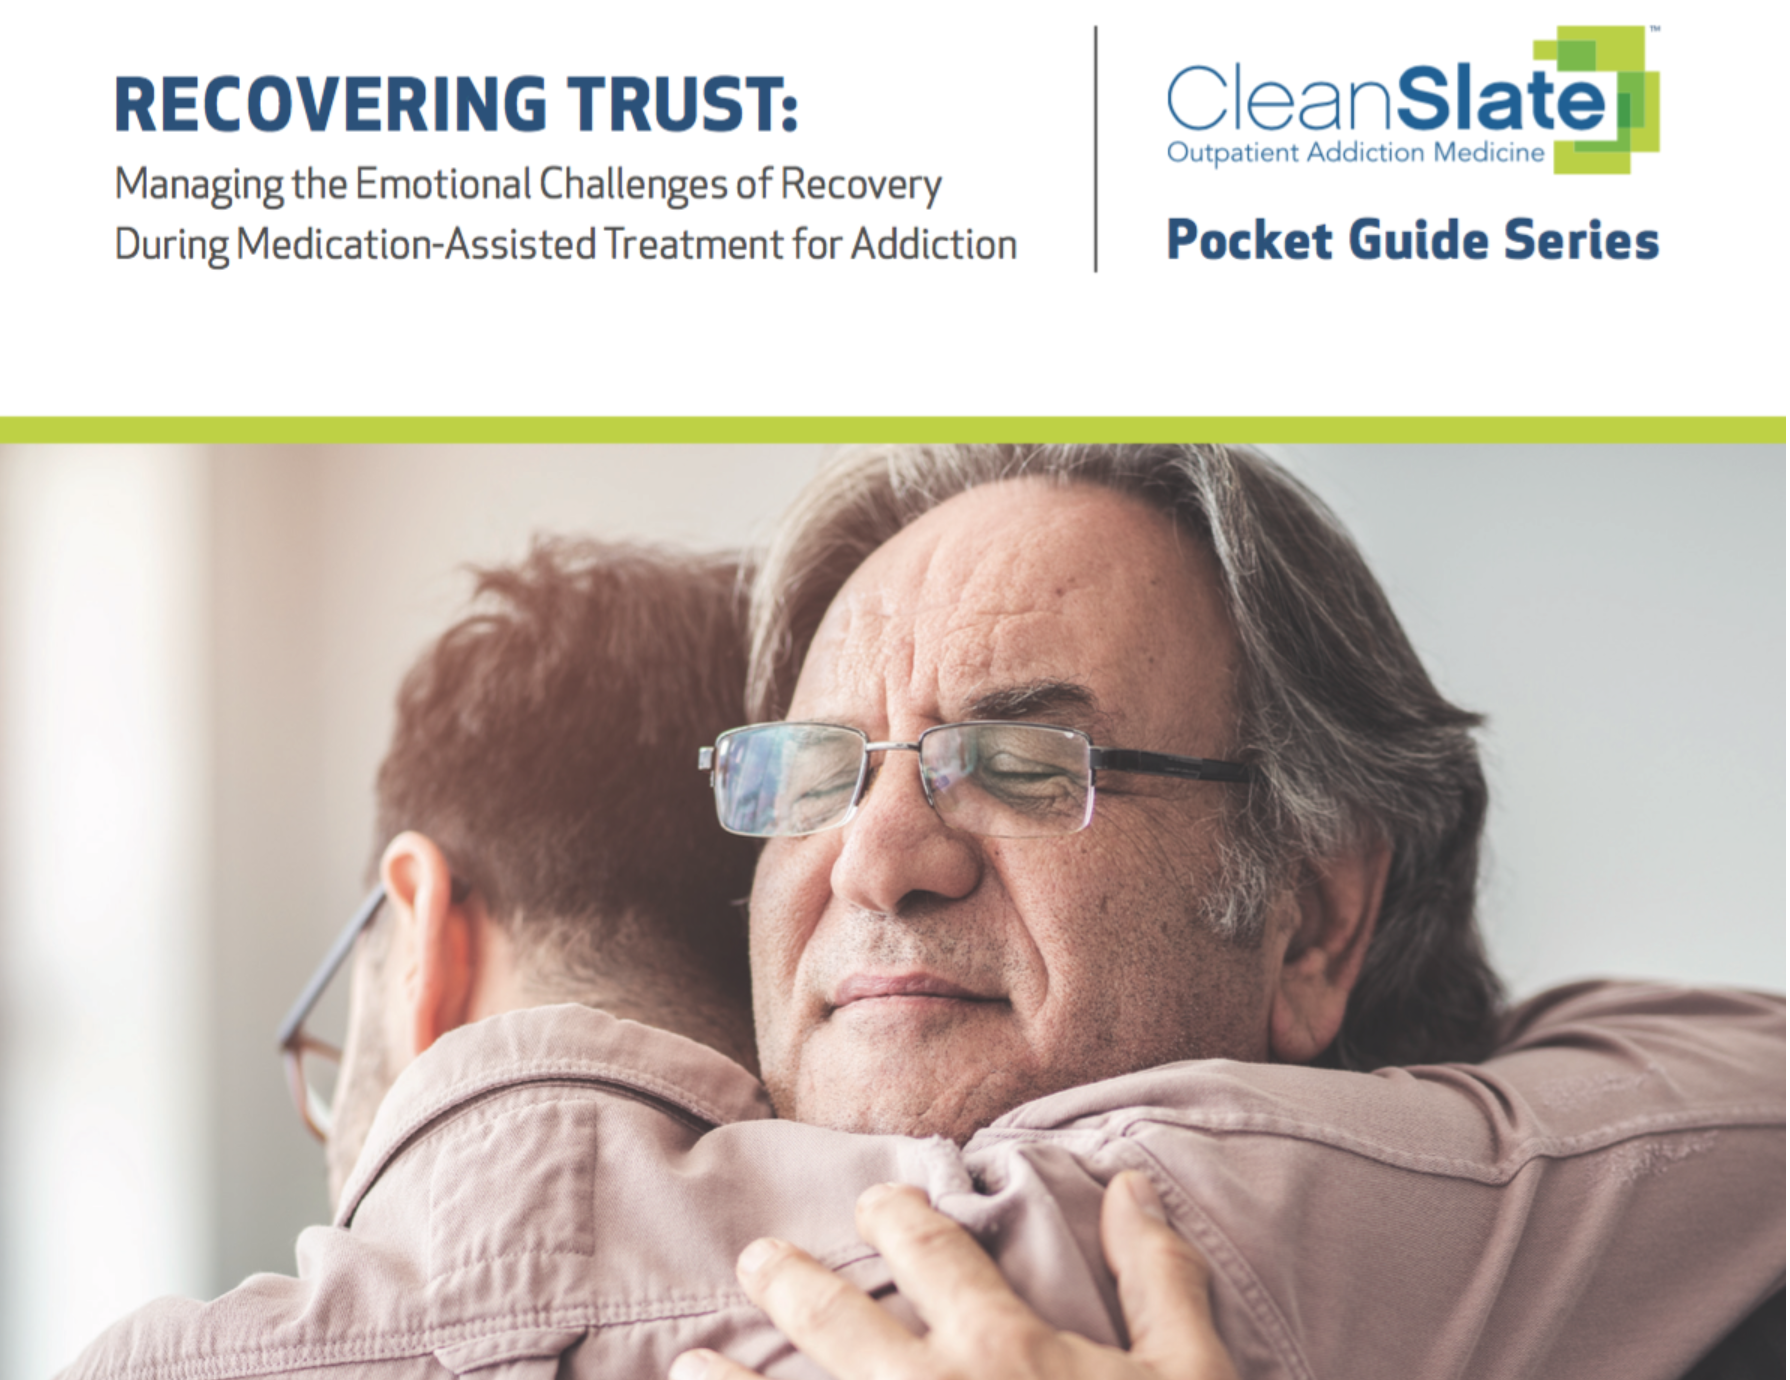 """CleanSlate Pocket Guide: """"Recovering Trust"""""""